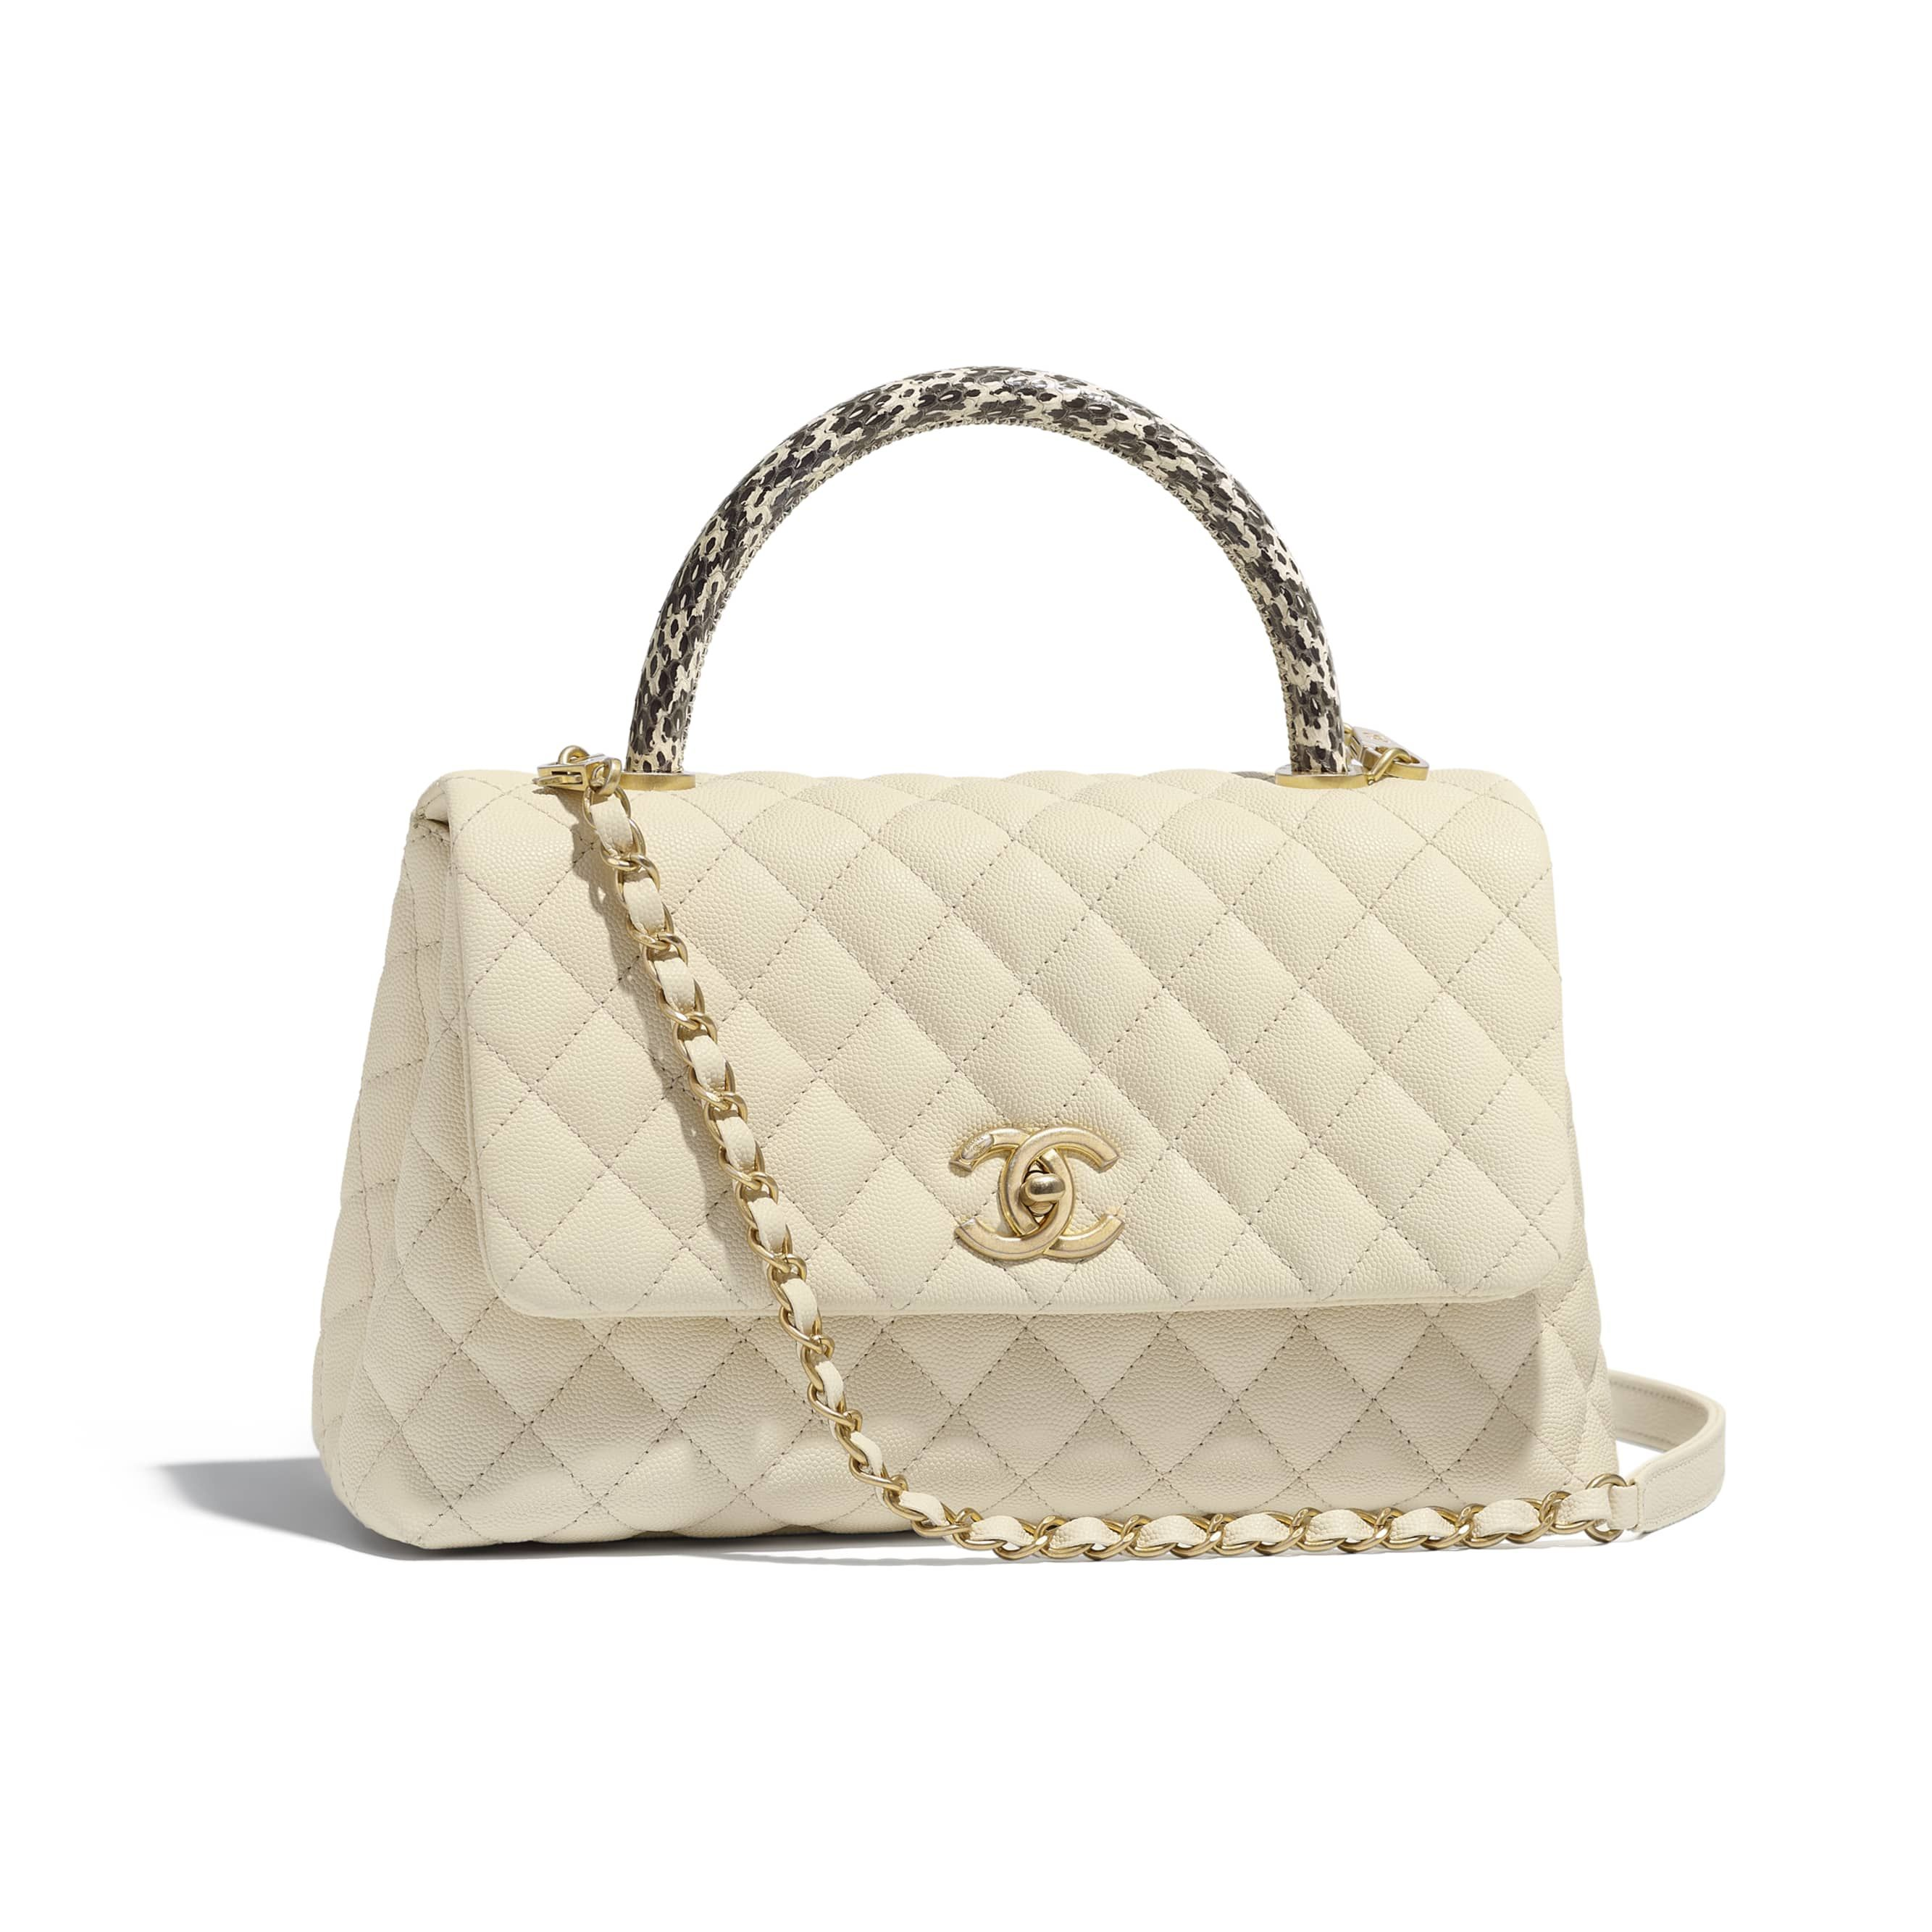 1d98507fa38a Flap Bag with Top Handle - Ivory - Grained Calfskin